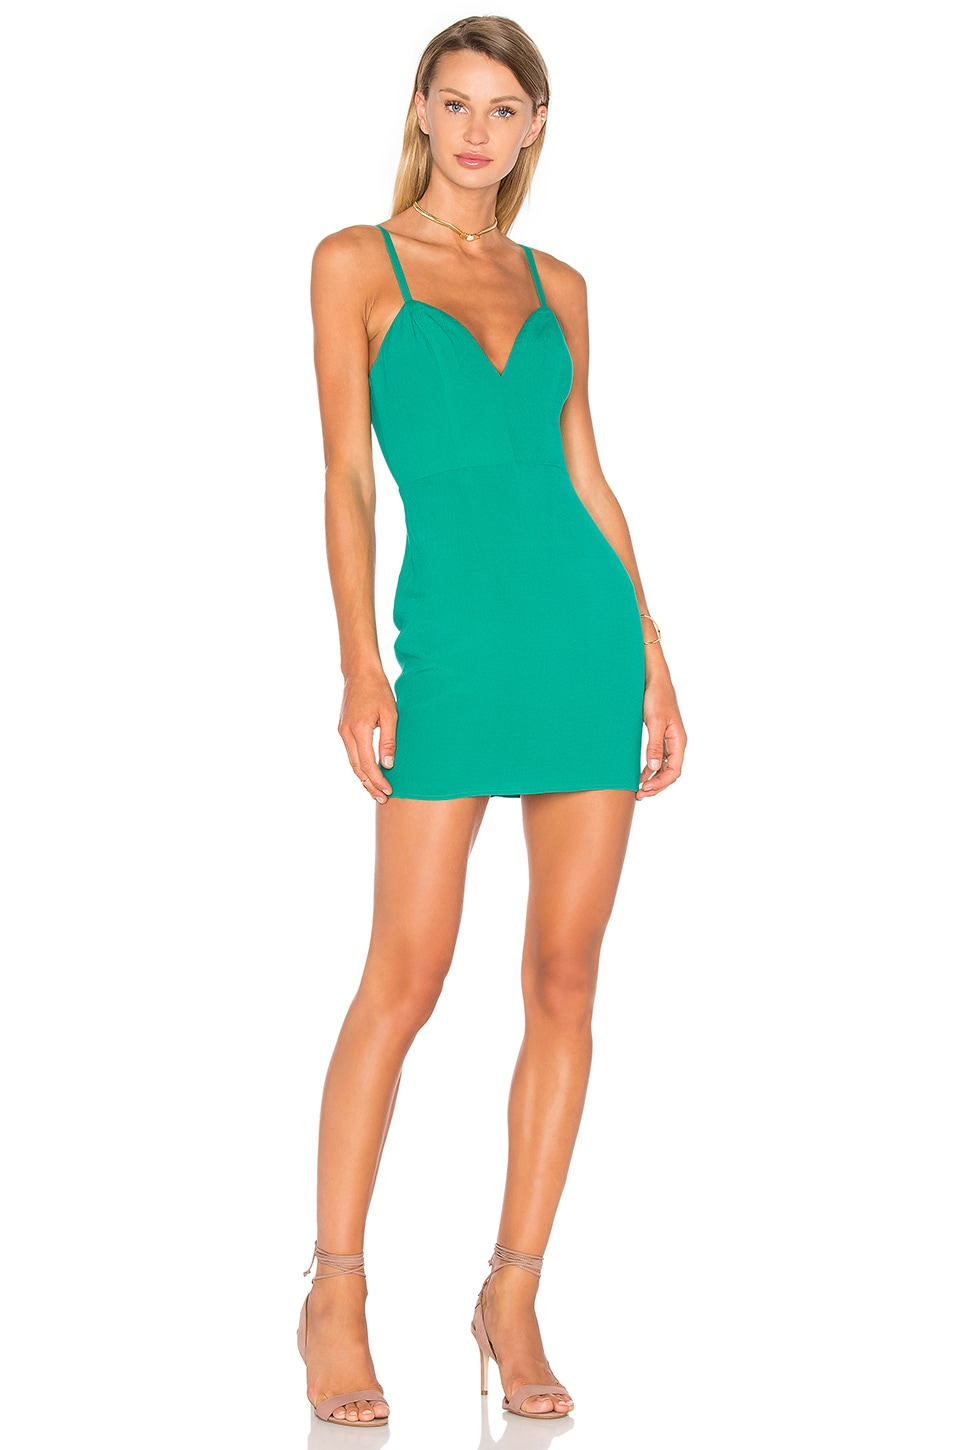 x Naven Twins Not Your Babe Dress by NBD